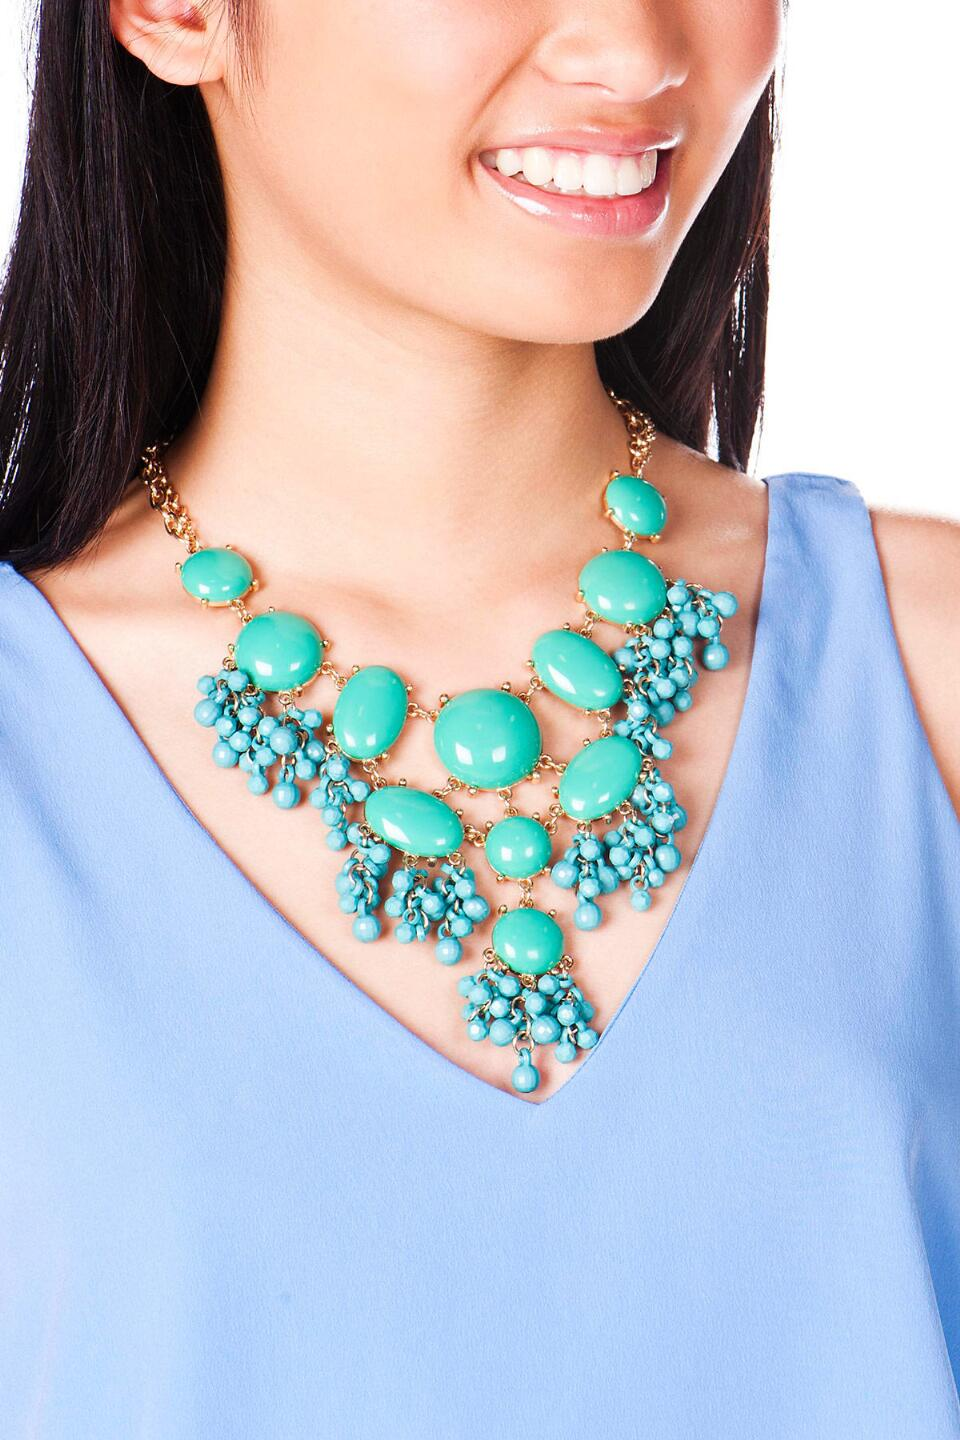 Corfu Island Beaded Statement Necklace in Green-  grn-clmodel